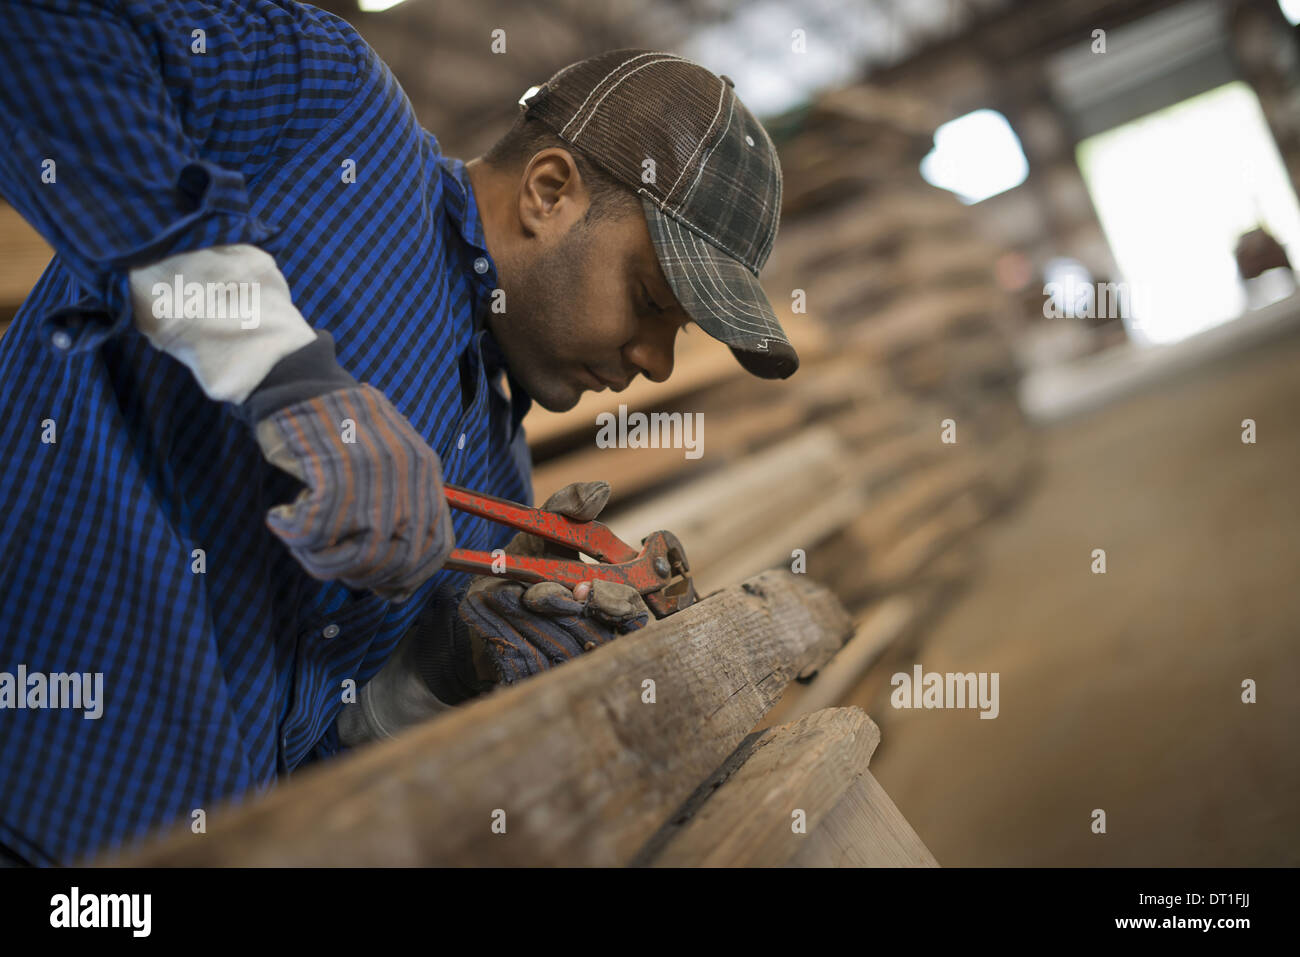 A man working in a reclaimed timber yard Using a tool to remove metals from a reclaimed piece of timber Workshop - Stock Image